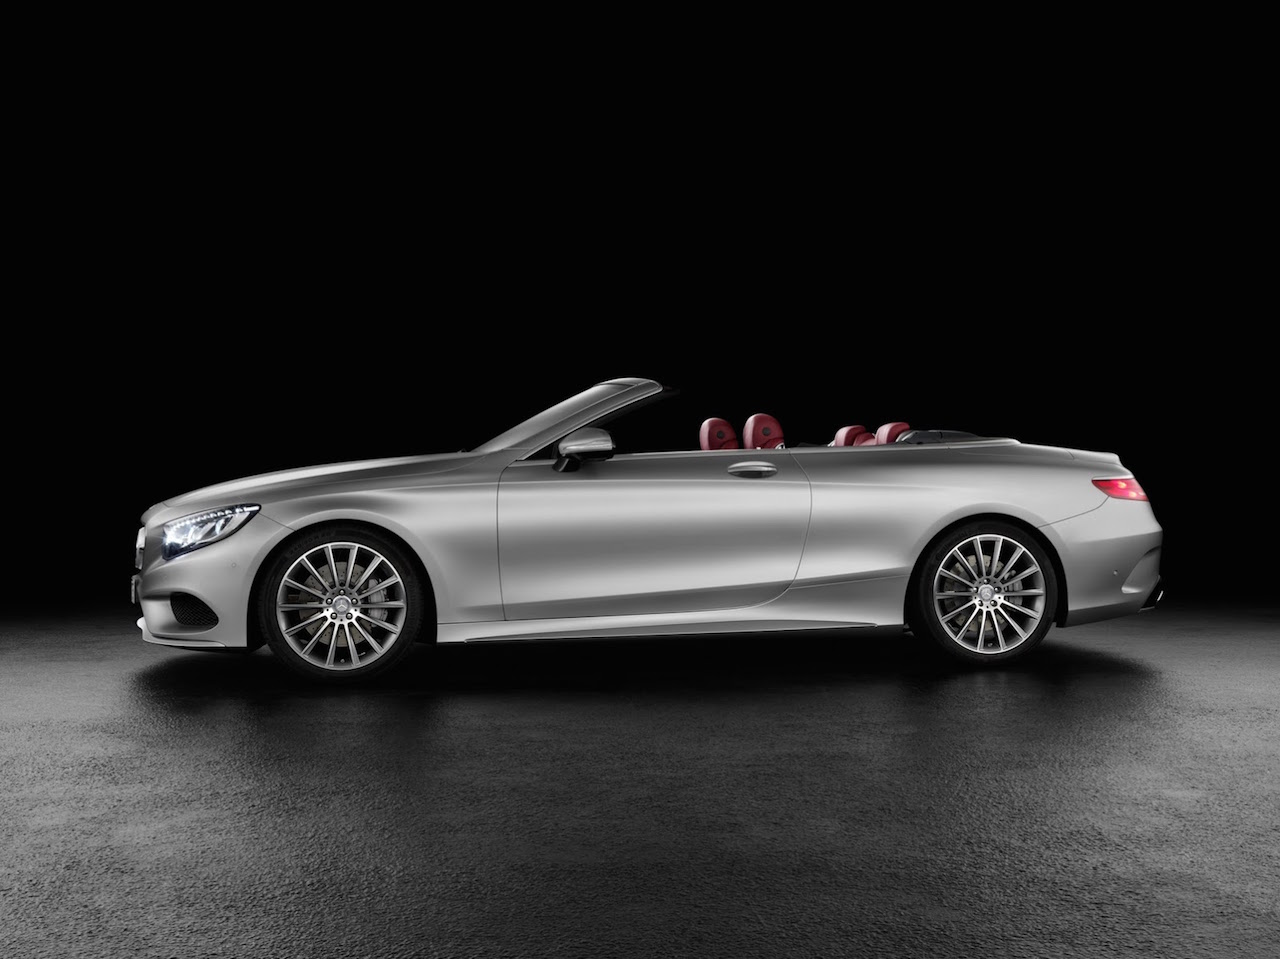 foto mercedes s klasse cabrio 2016 mercedes s klasse cabrio 2016 035. Black Bedroom Furniture Sets. Home Design Ideas